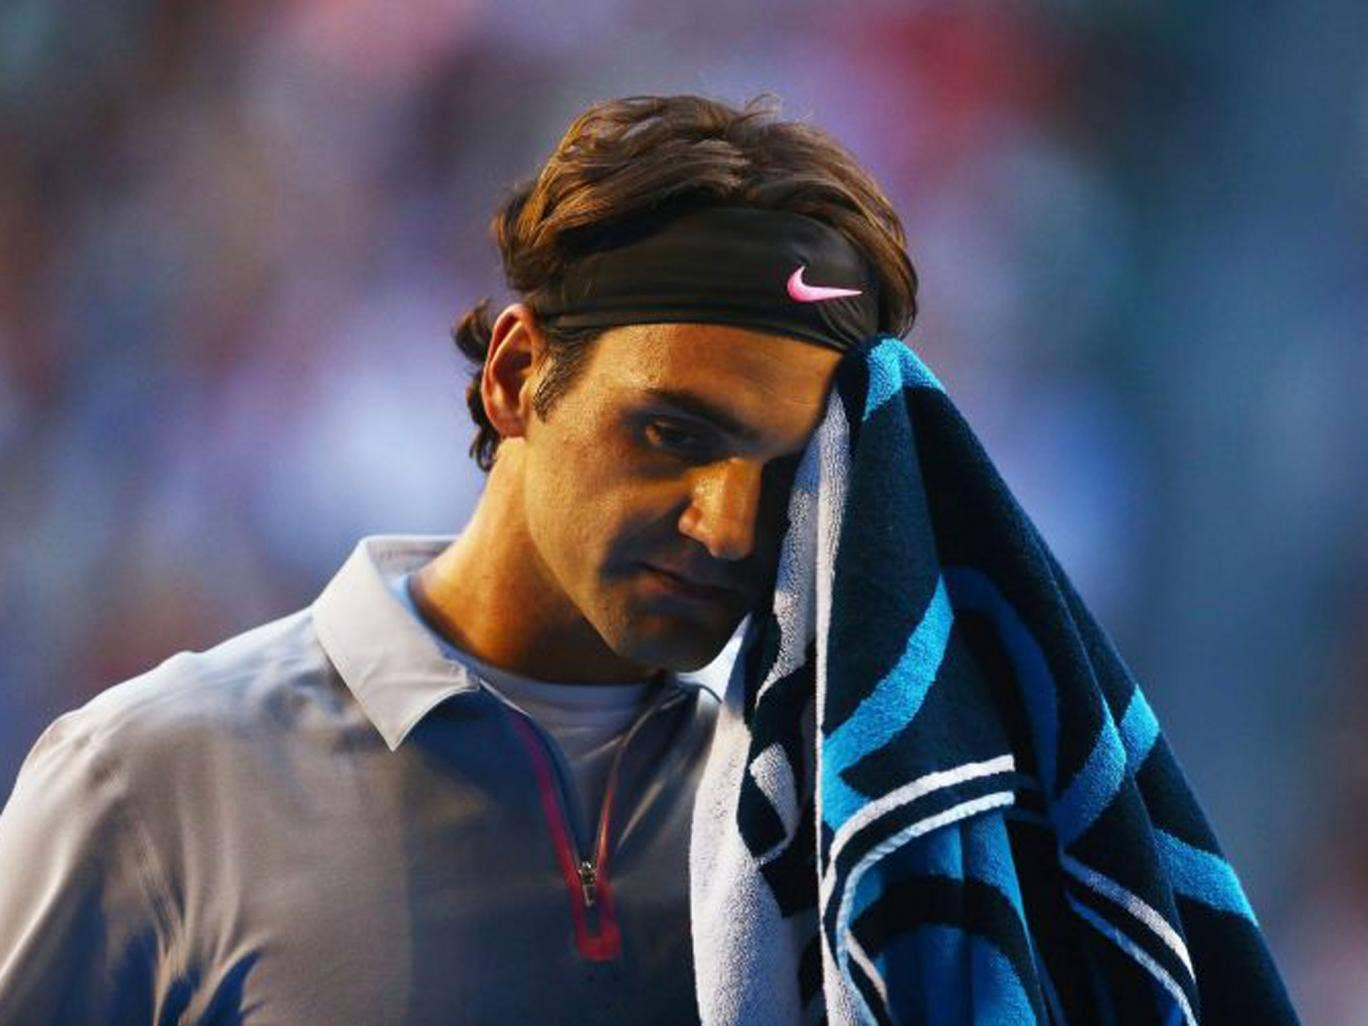 Roger Federer was outserved and saw Murray hit more winners